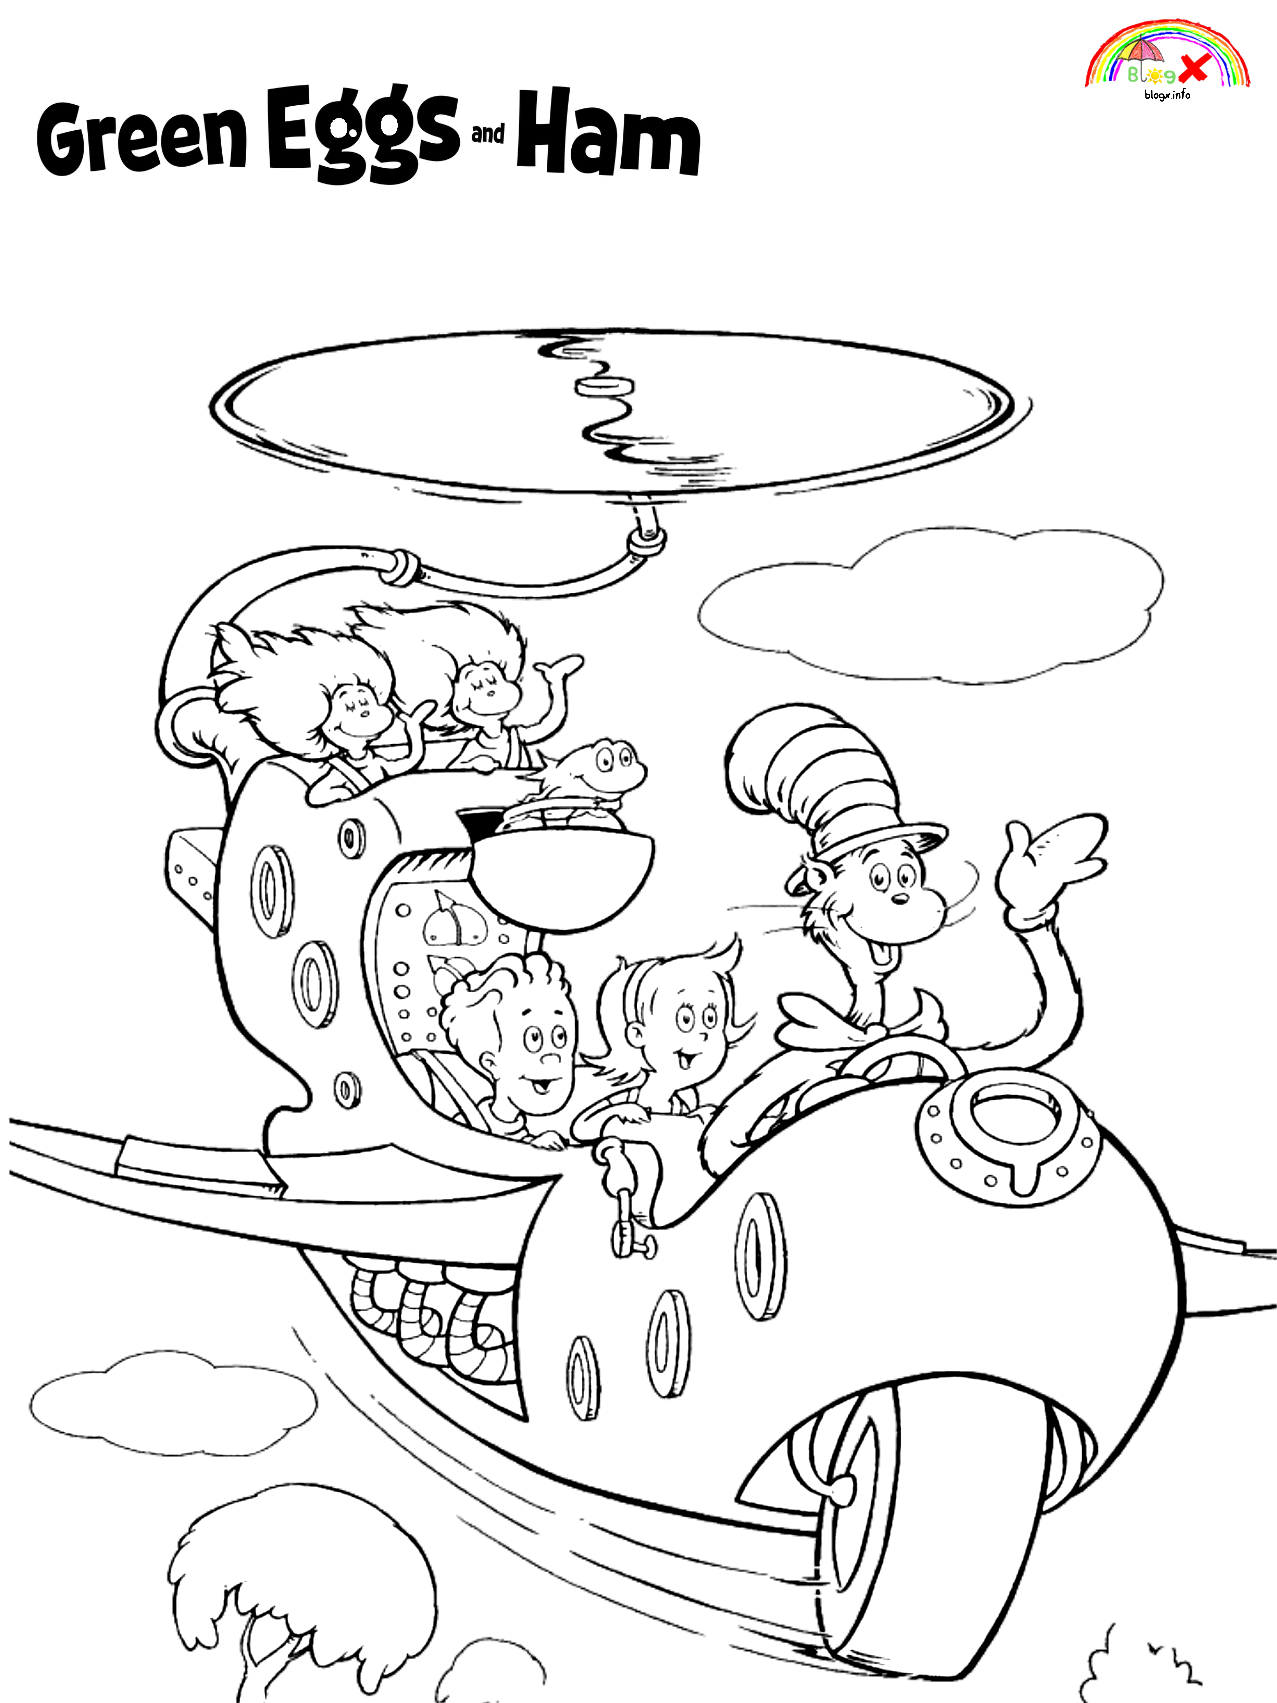 green eggs and ham coloring sheets green eggs and ham pages coloring pages ham green coloring eggs sheets and